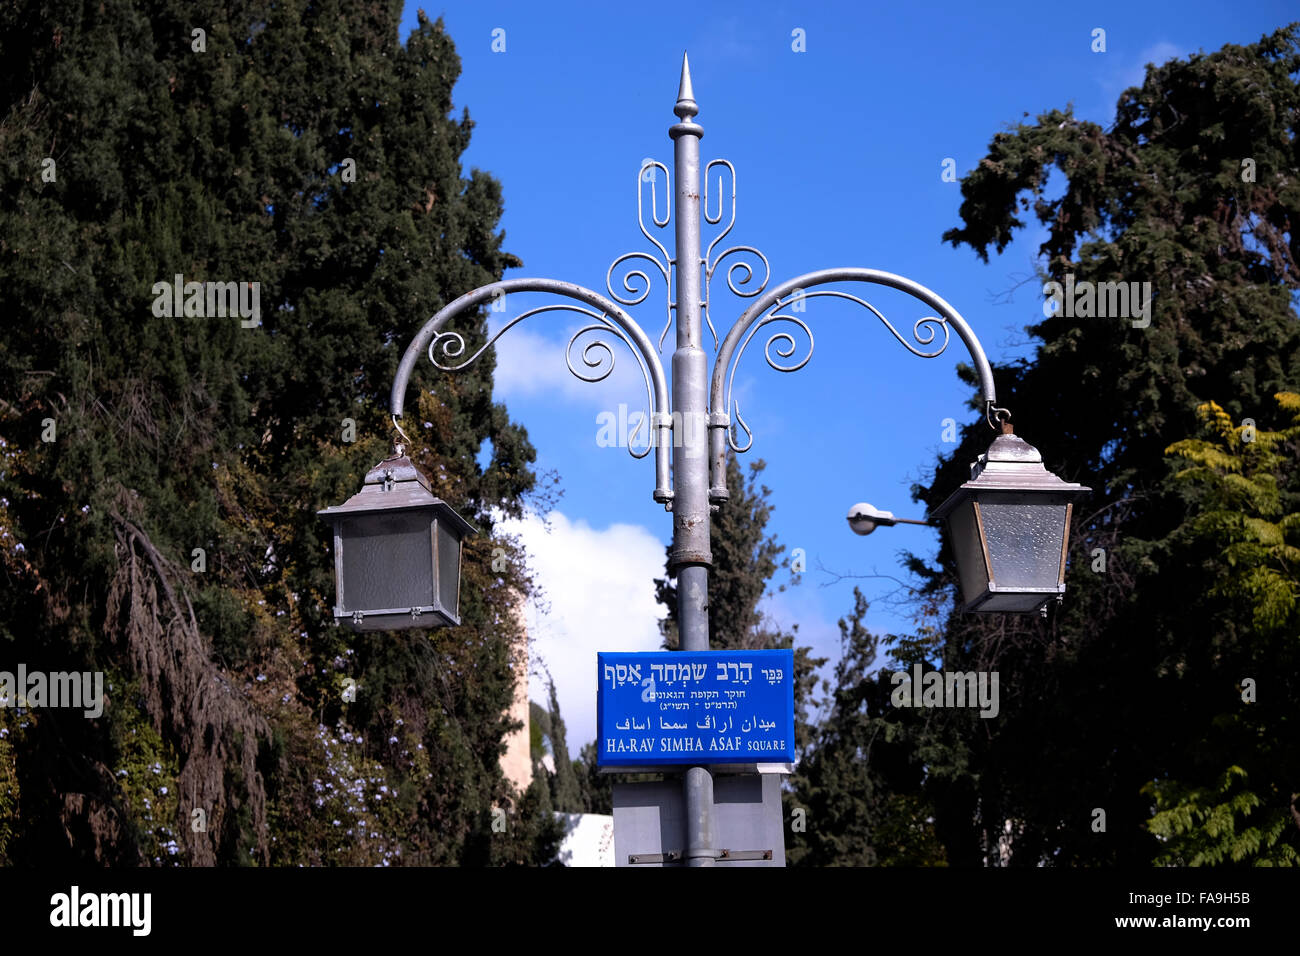 Street sign in Hebrew English and Arabic on old lamppost in Rehavia also Rechavia neighborhood in West Jerusalem - Stock Image